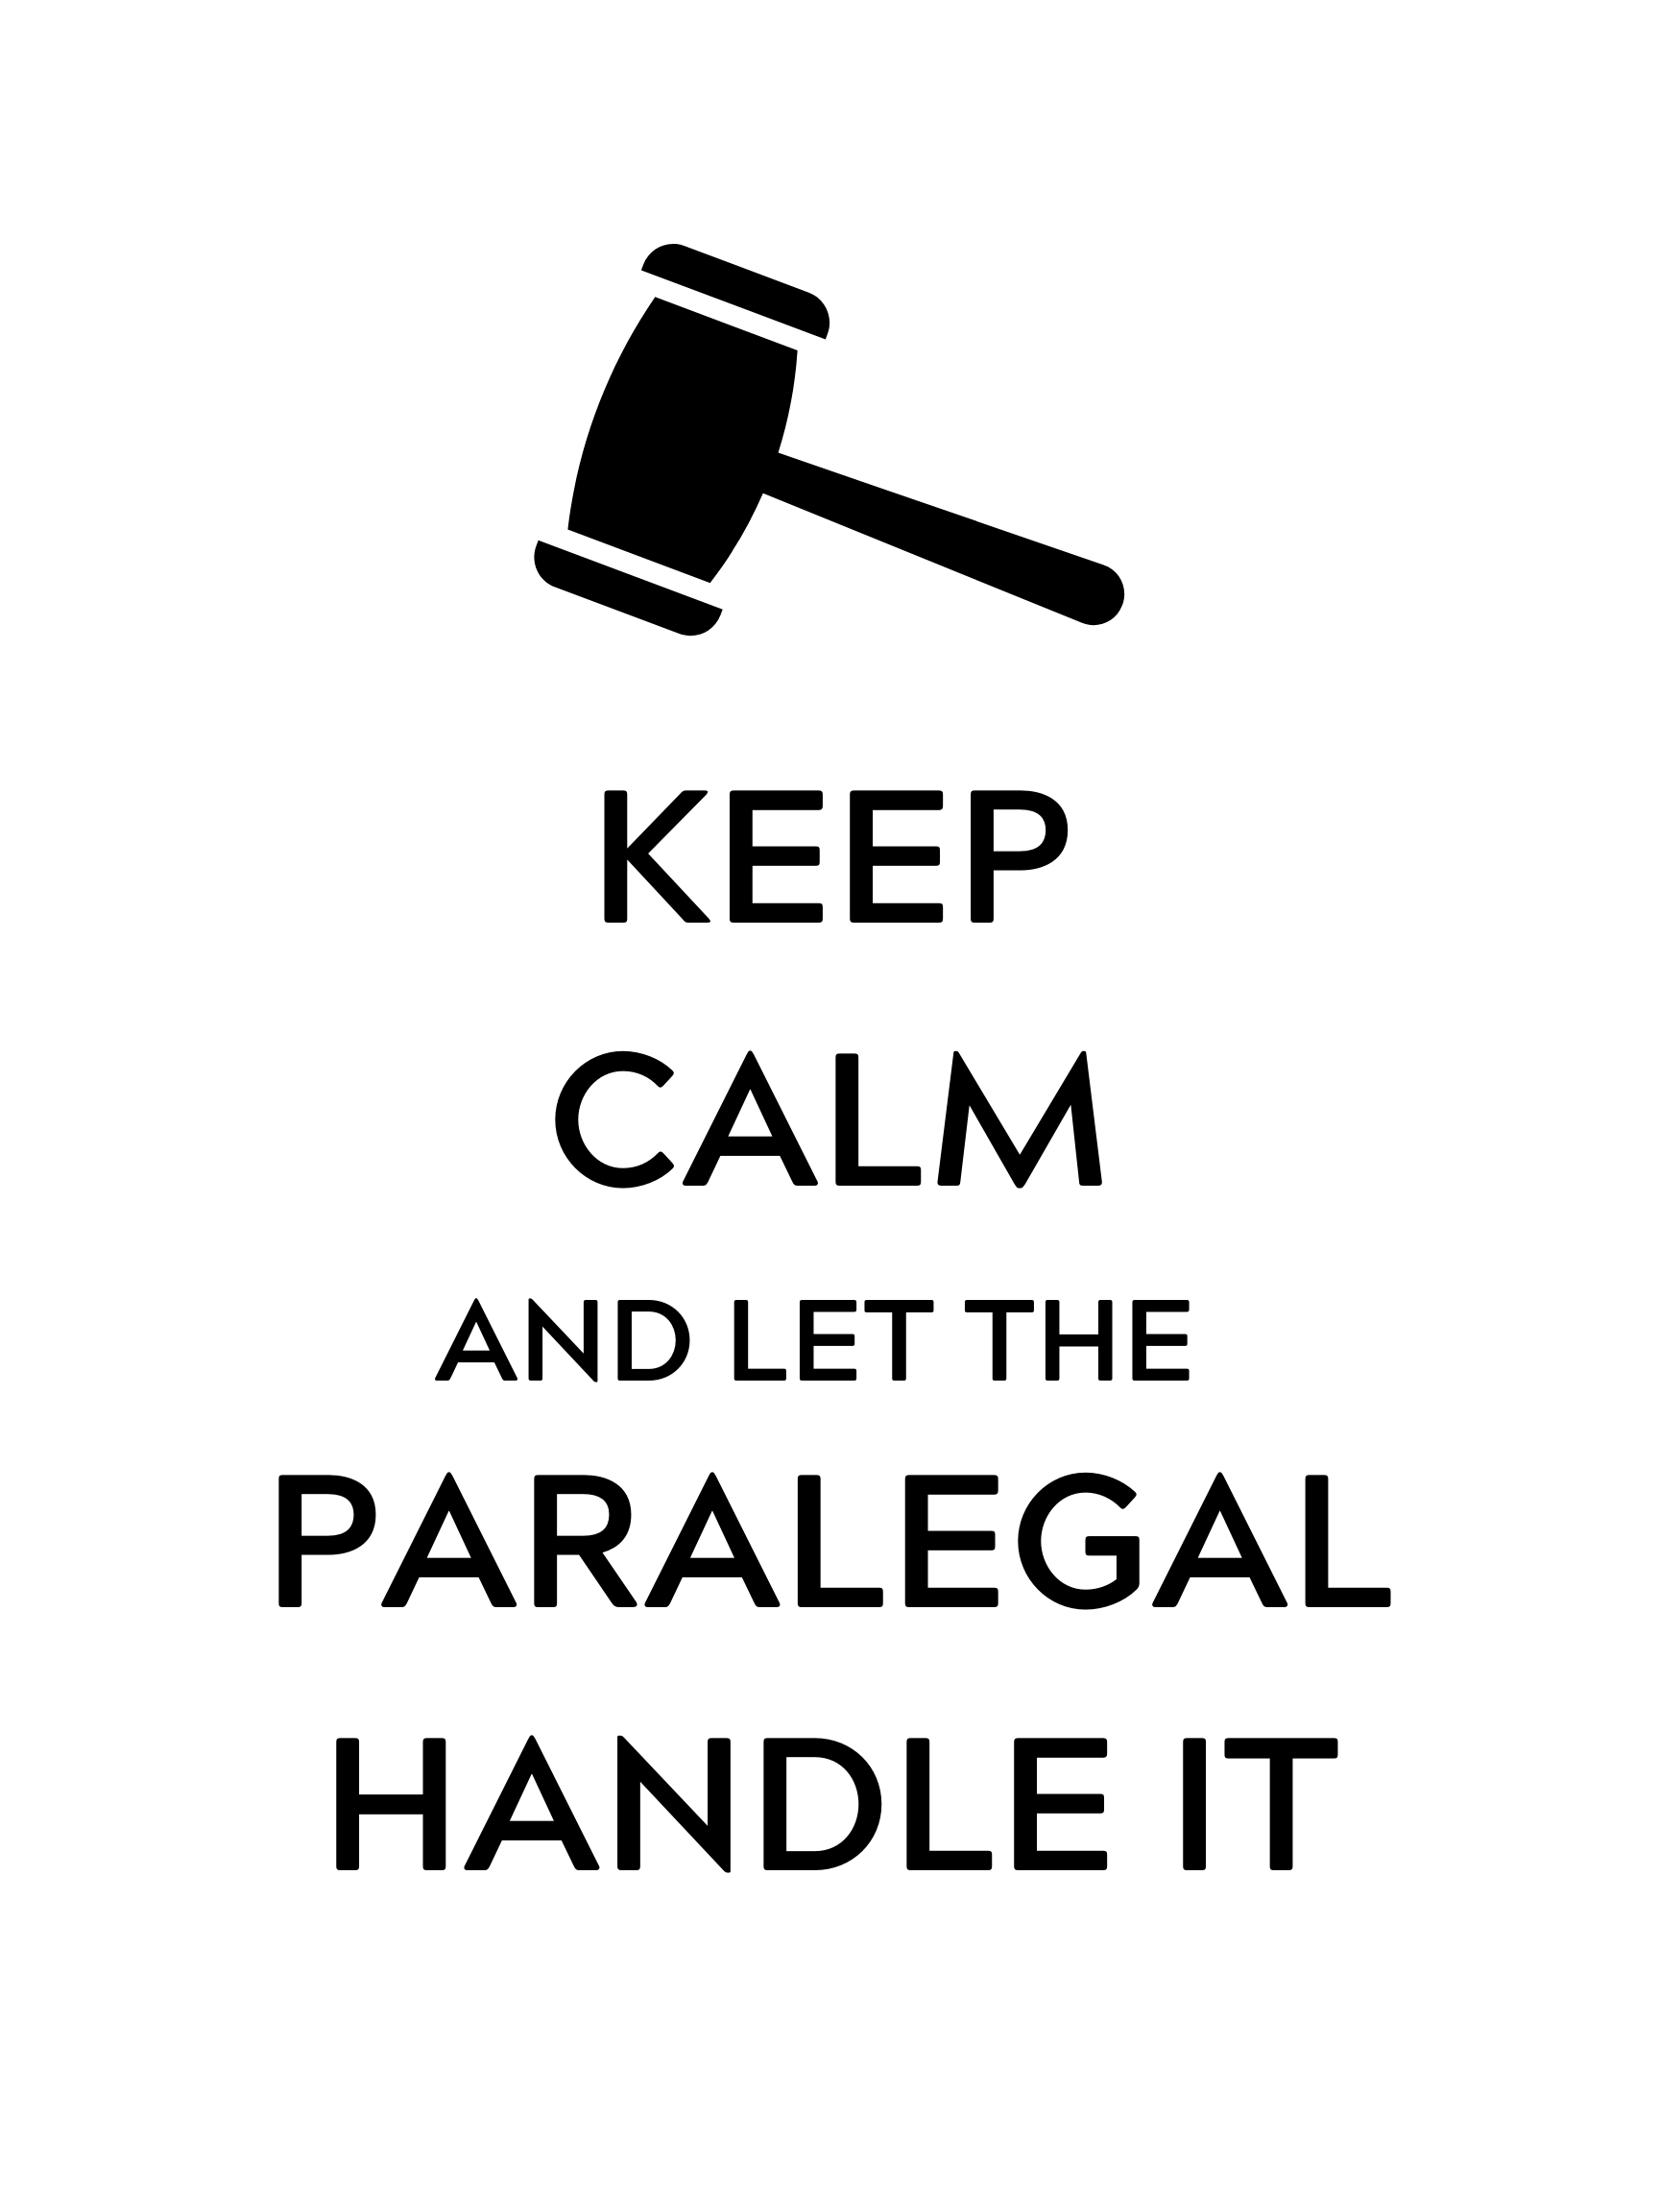 KEEP-CALM-AND-LET-THE-PARALEGAL-HANDLE-IT